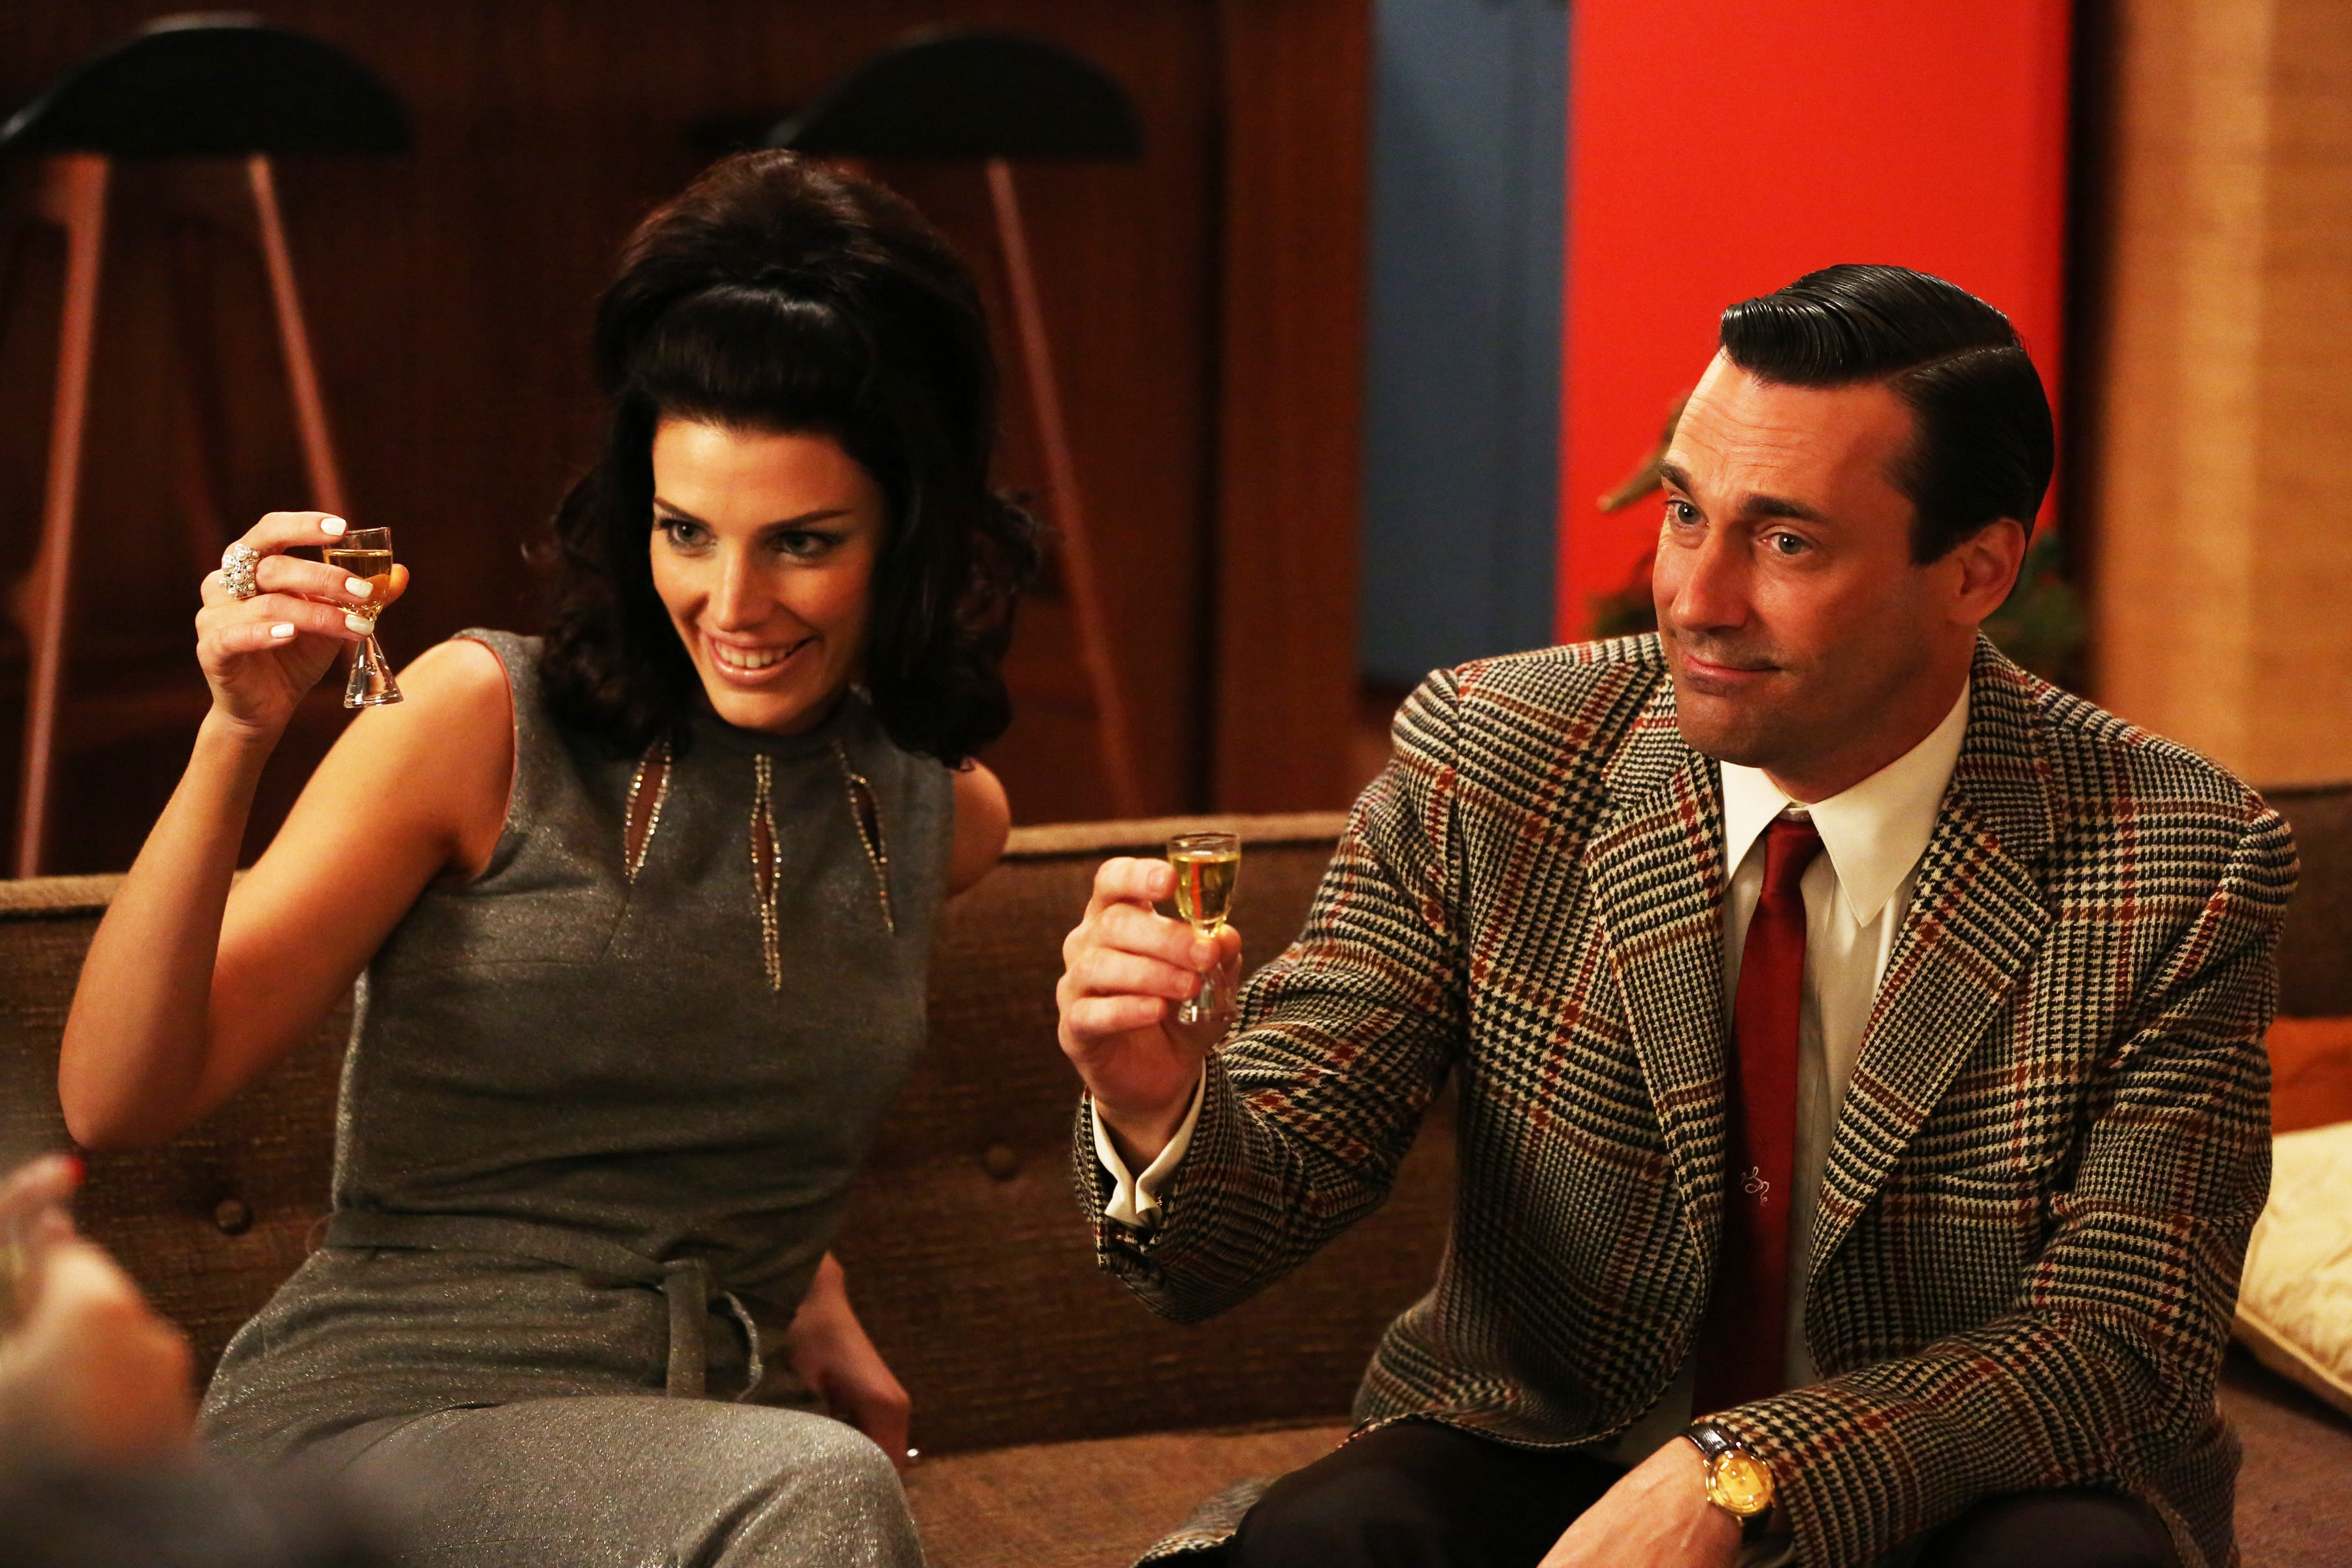 """Jessica Pare plays Megan Draper and Jon Hamm is her husband Don, in a scene from Season 6 of """"Mad Men,"""" which debuts Sunday on AMC."""